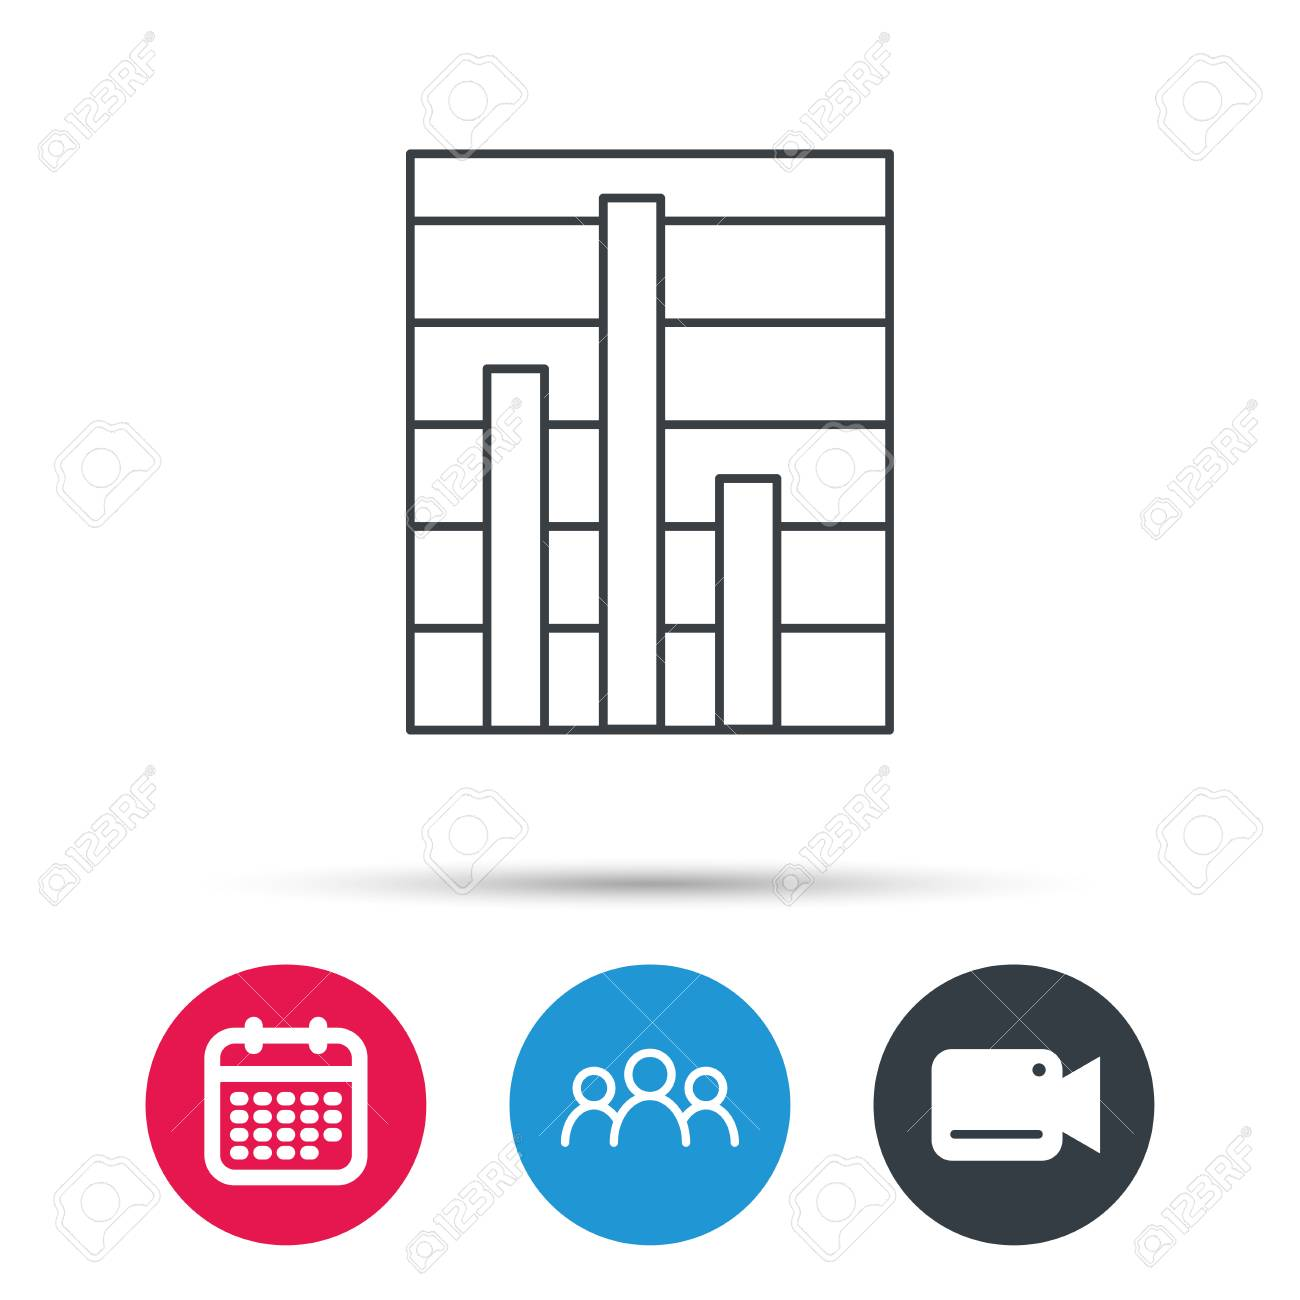 Chart icon graph diagram sign demand reduction symbol group chart icon graph diagram sign demand reduction symbol group of people video ccuart Gallery